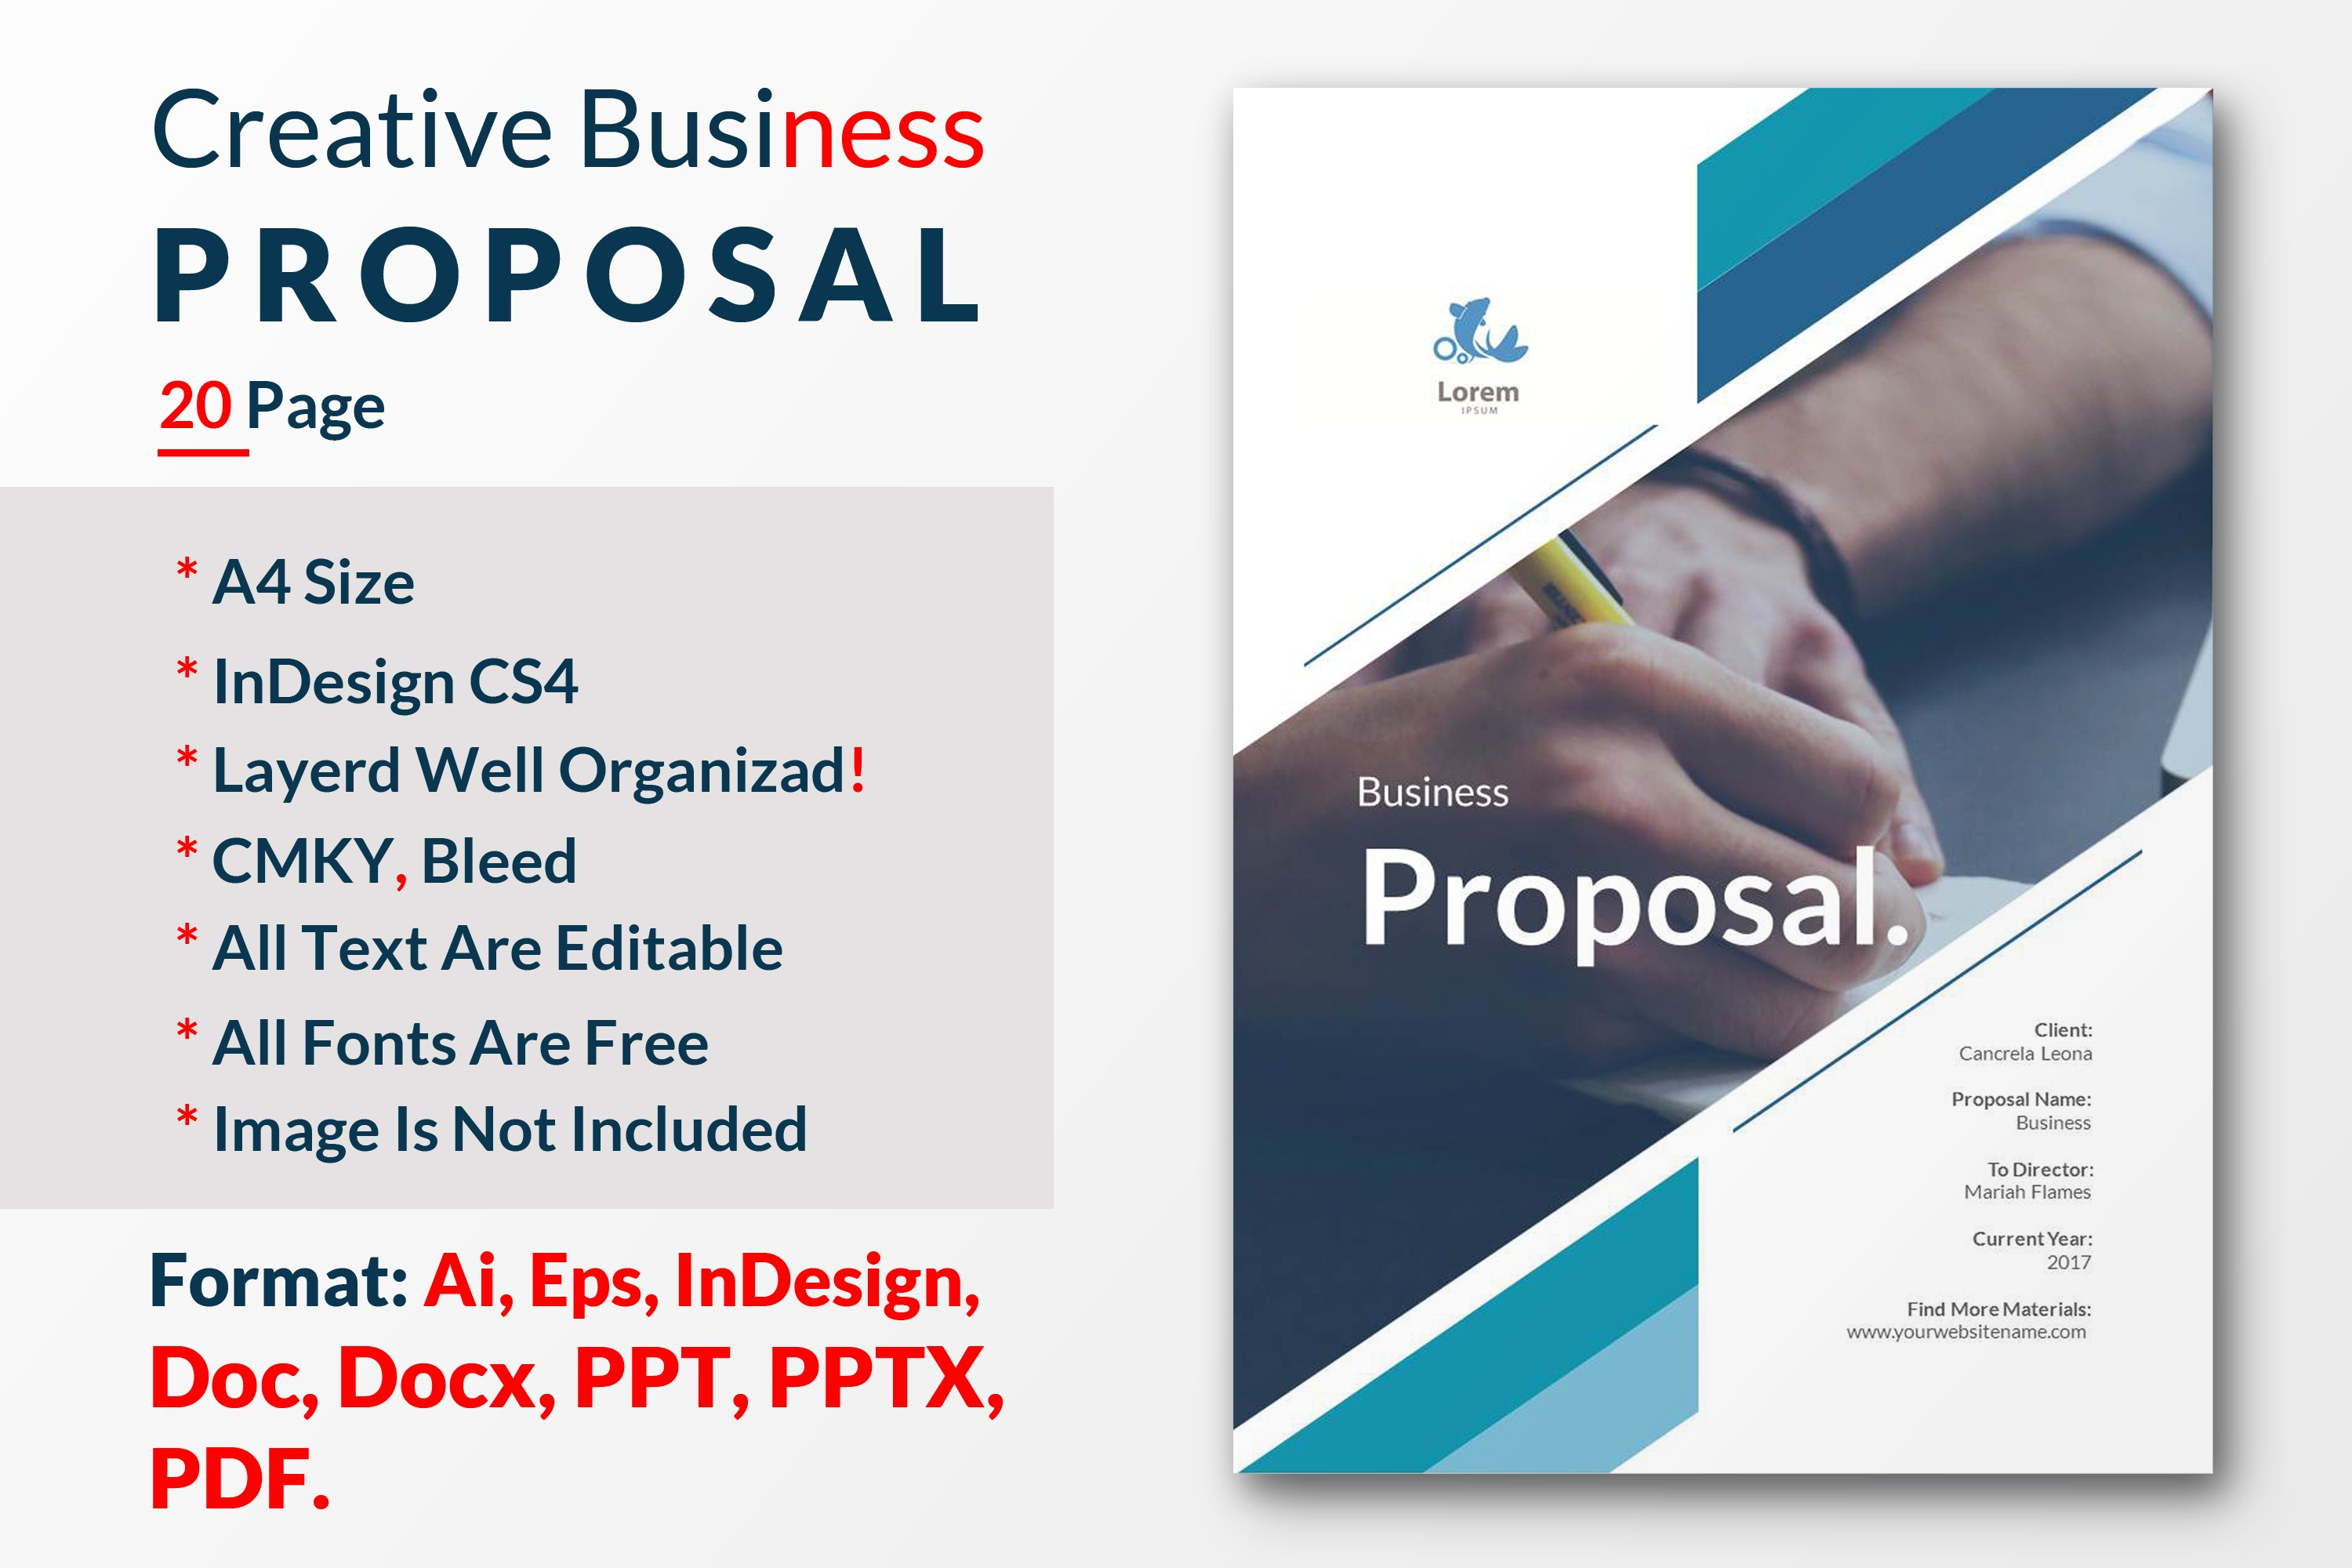 How to write a design proposal the ultimate guide creative market creative business proposal template accmission Choice Image